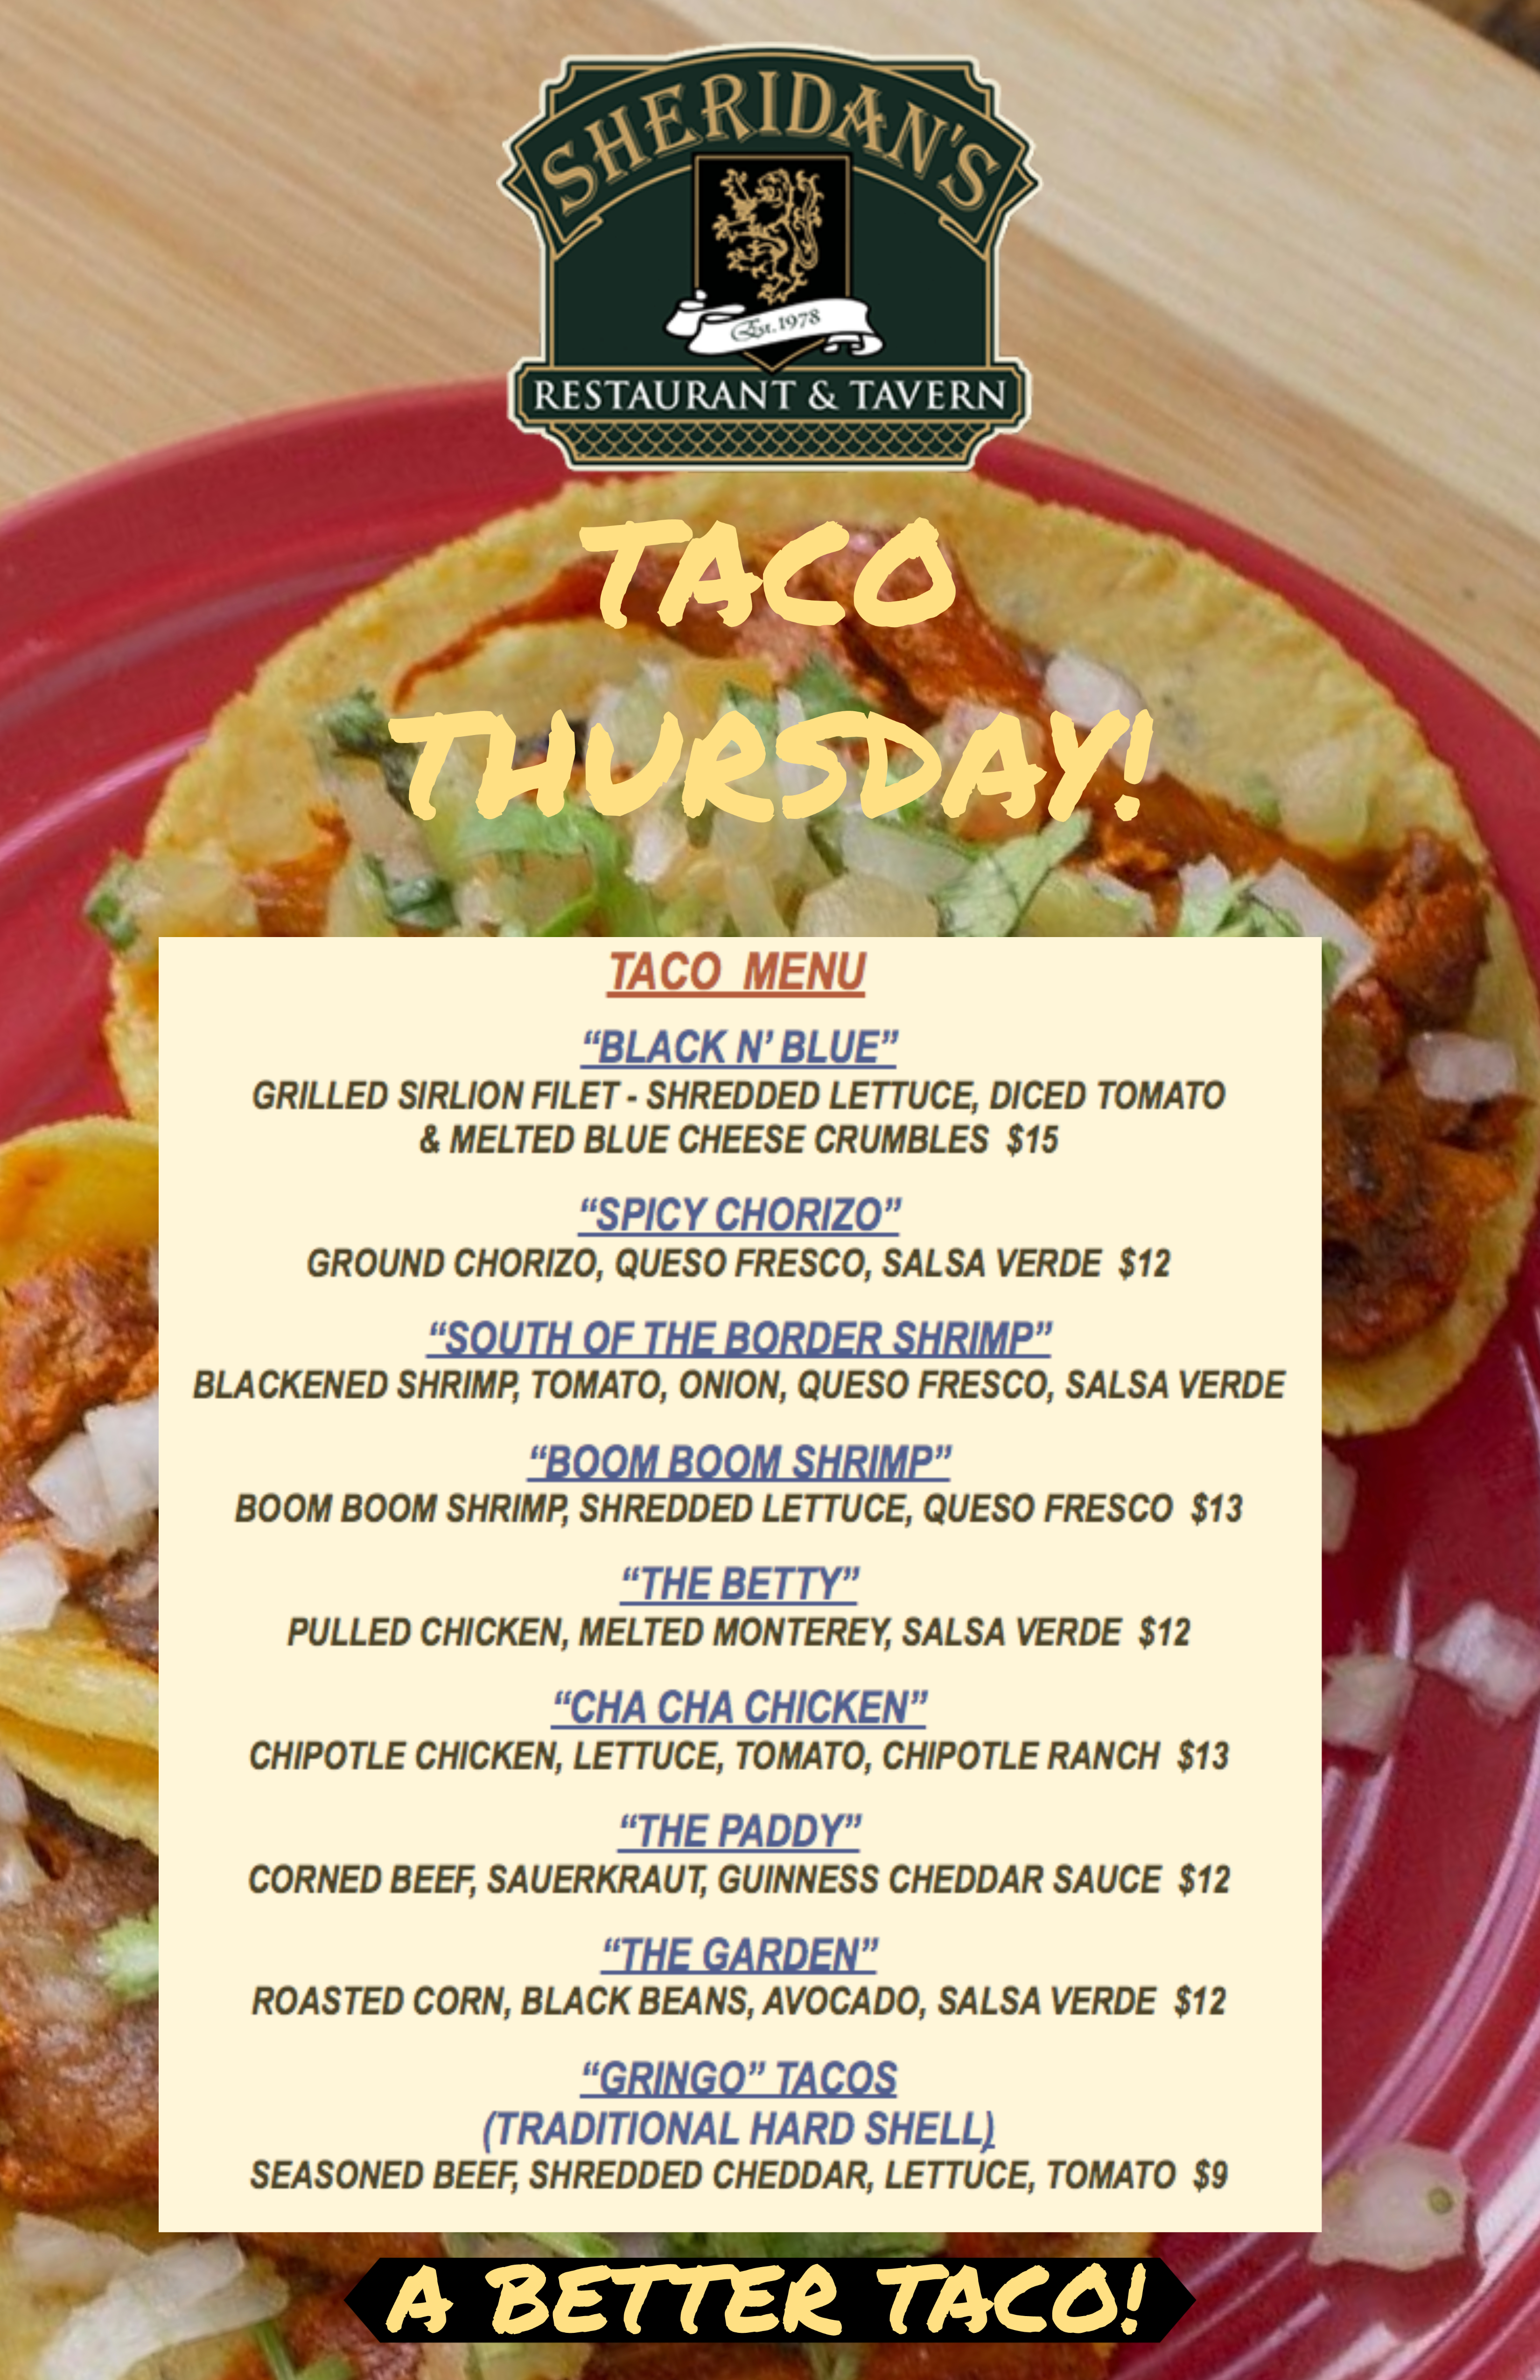 TACO THURSDAYS AT SHERIDAN'S - A BETTER TACO!